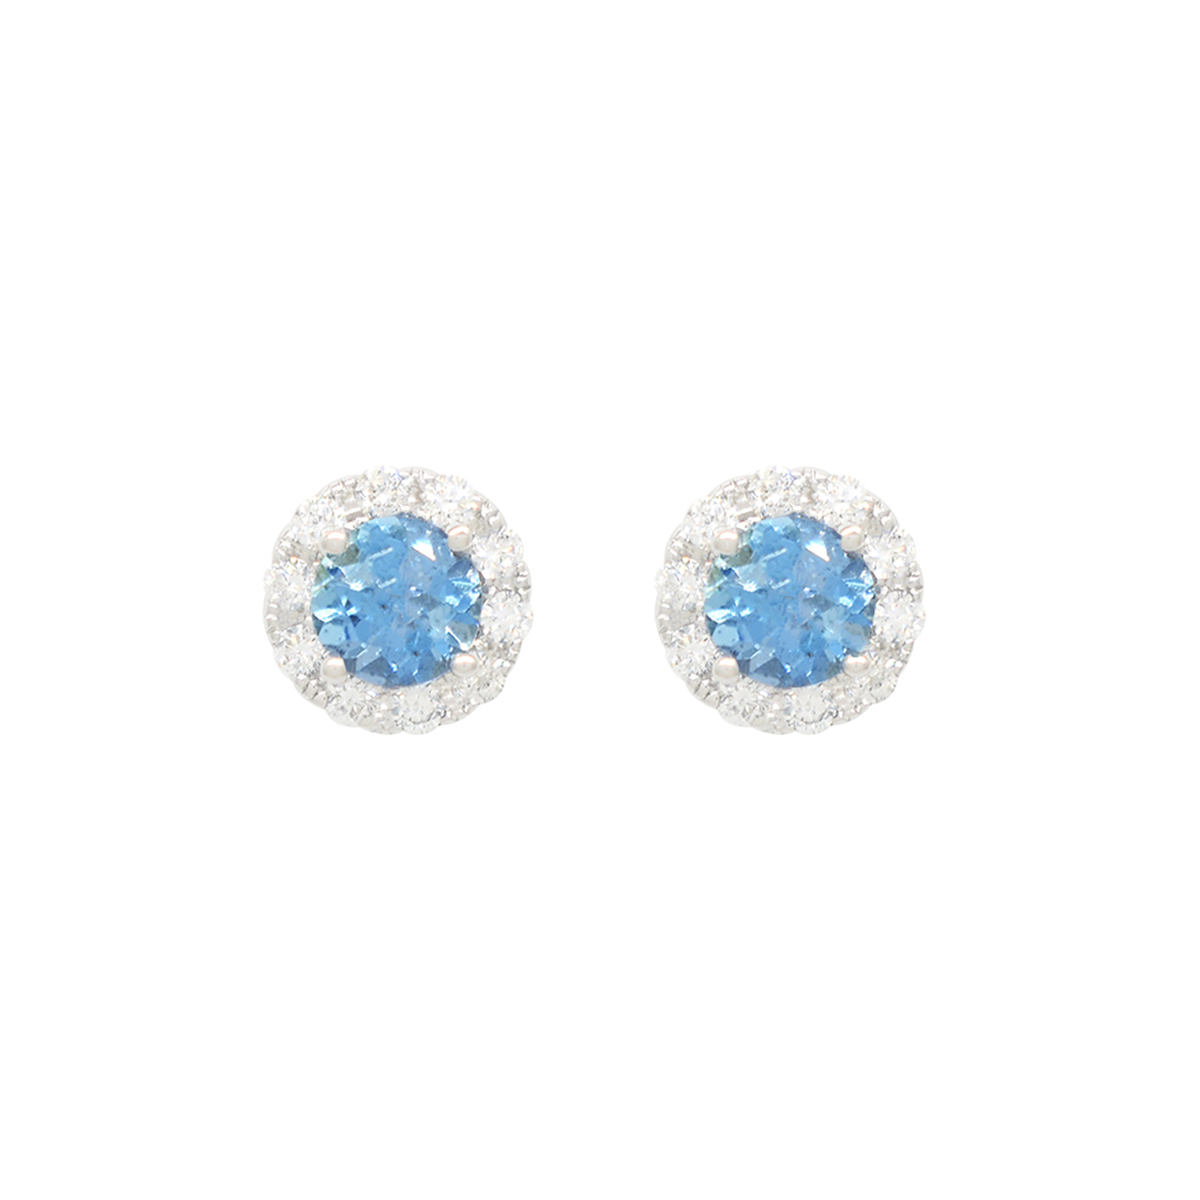 dainty-stud-earrings-with-aquamarine-and-diamond-halo-in-18k-white-gold